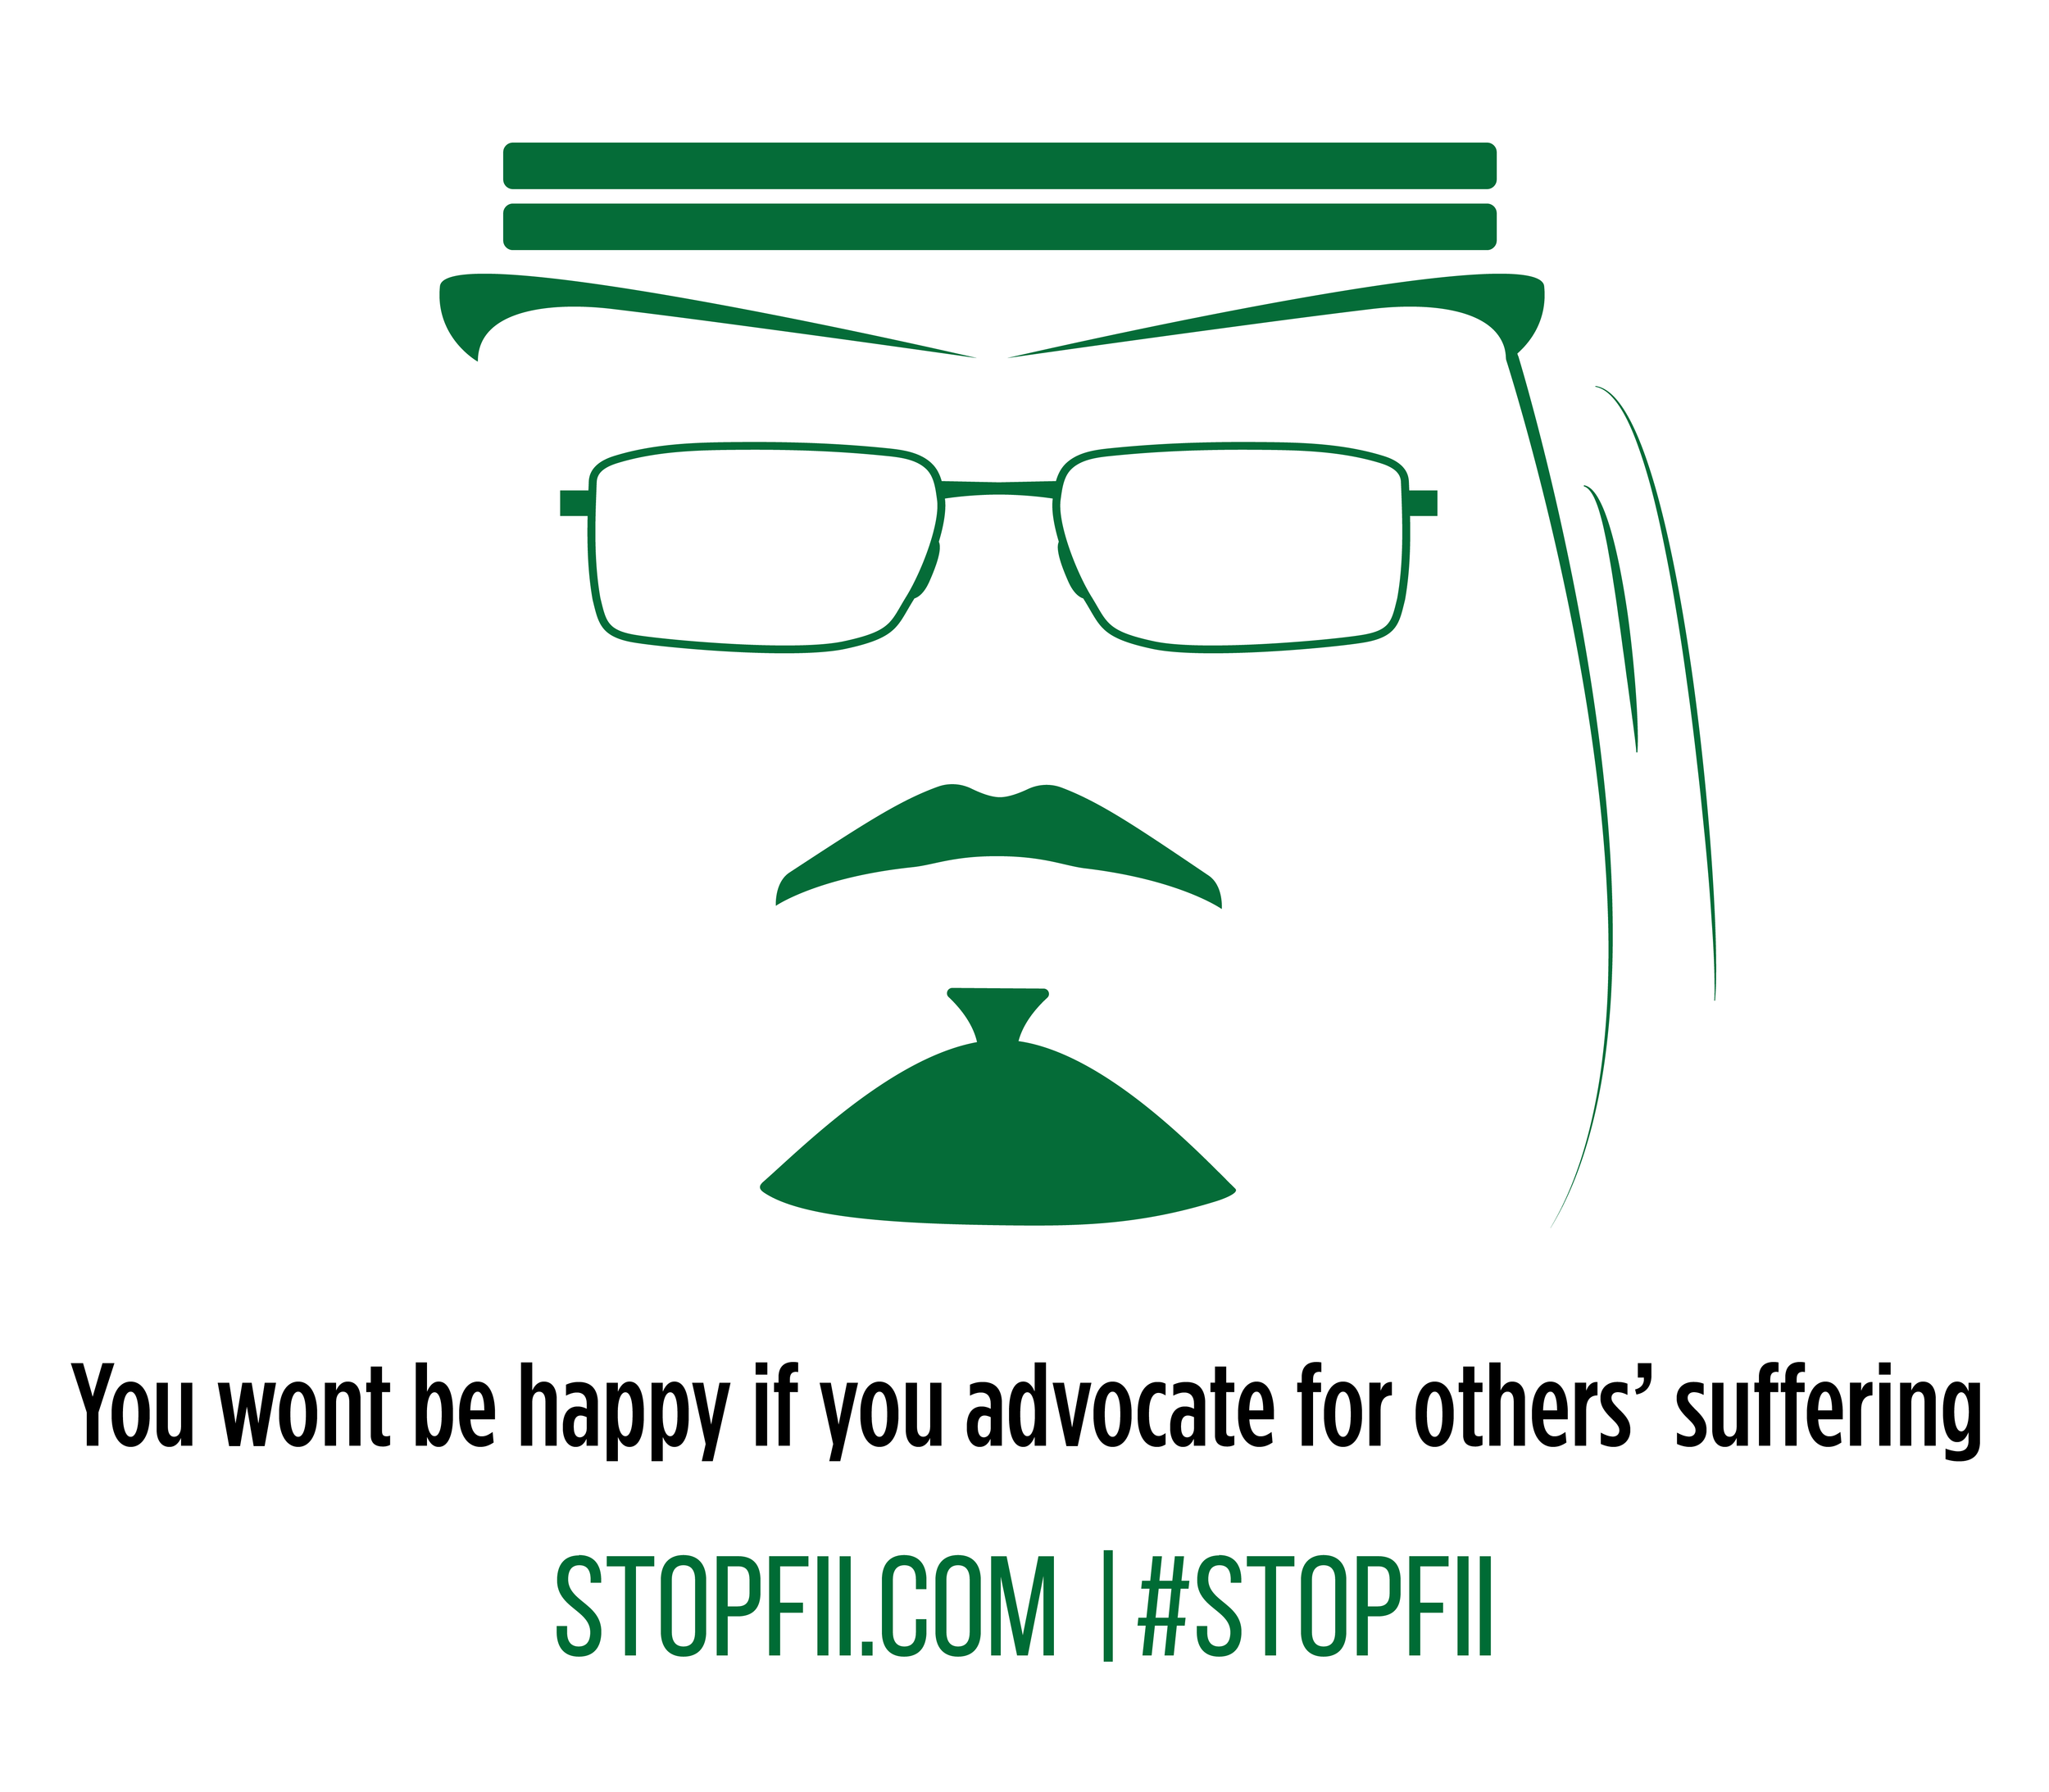 You wont be happy if you advocate for others' suffering